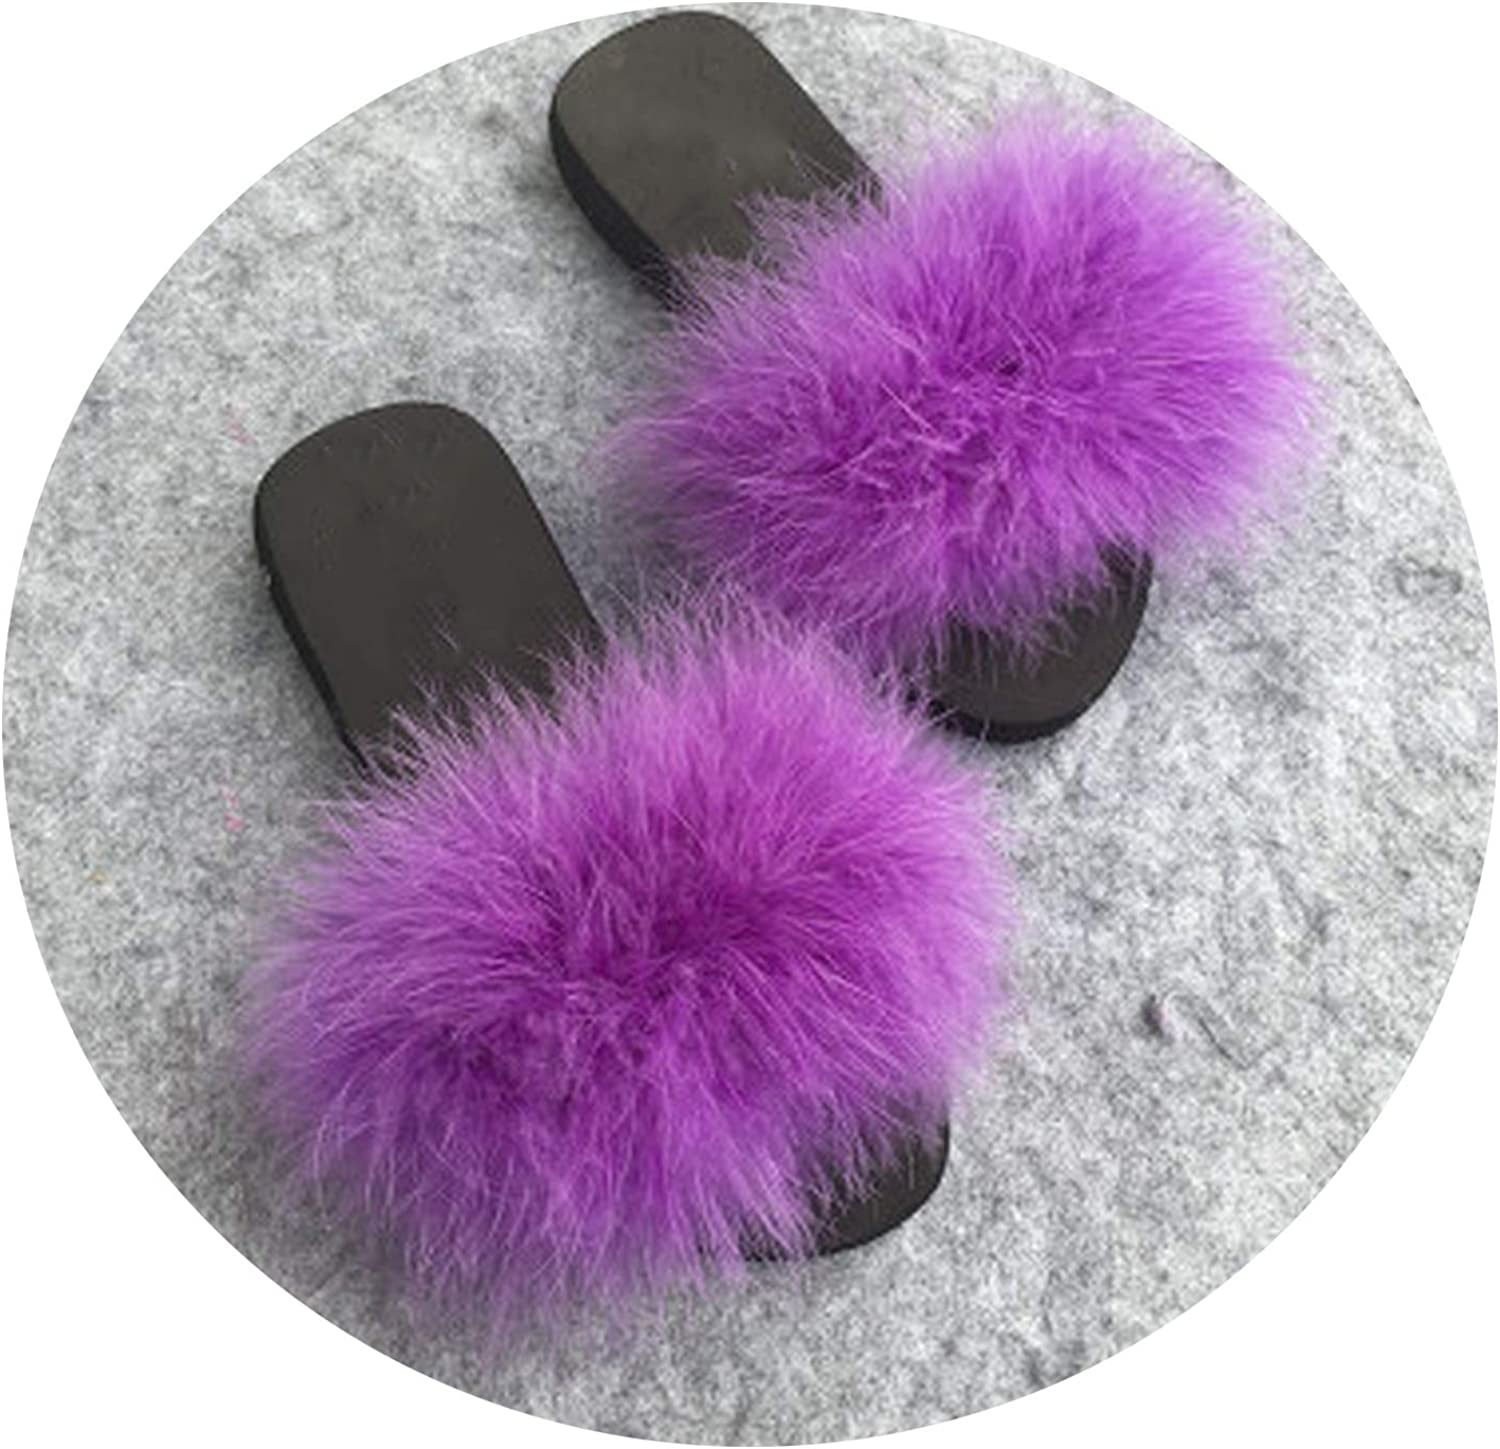 Just XiaoZhouZhou Summer Women's Ostrich Feather Slides Fluffy Faux Fur Slippers Flat Home Flip Flops Fuzzy Multiple color Sexy Party shoes